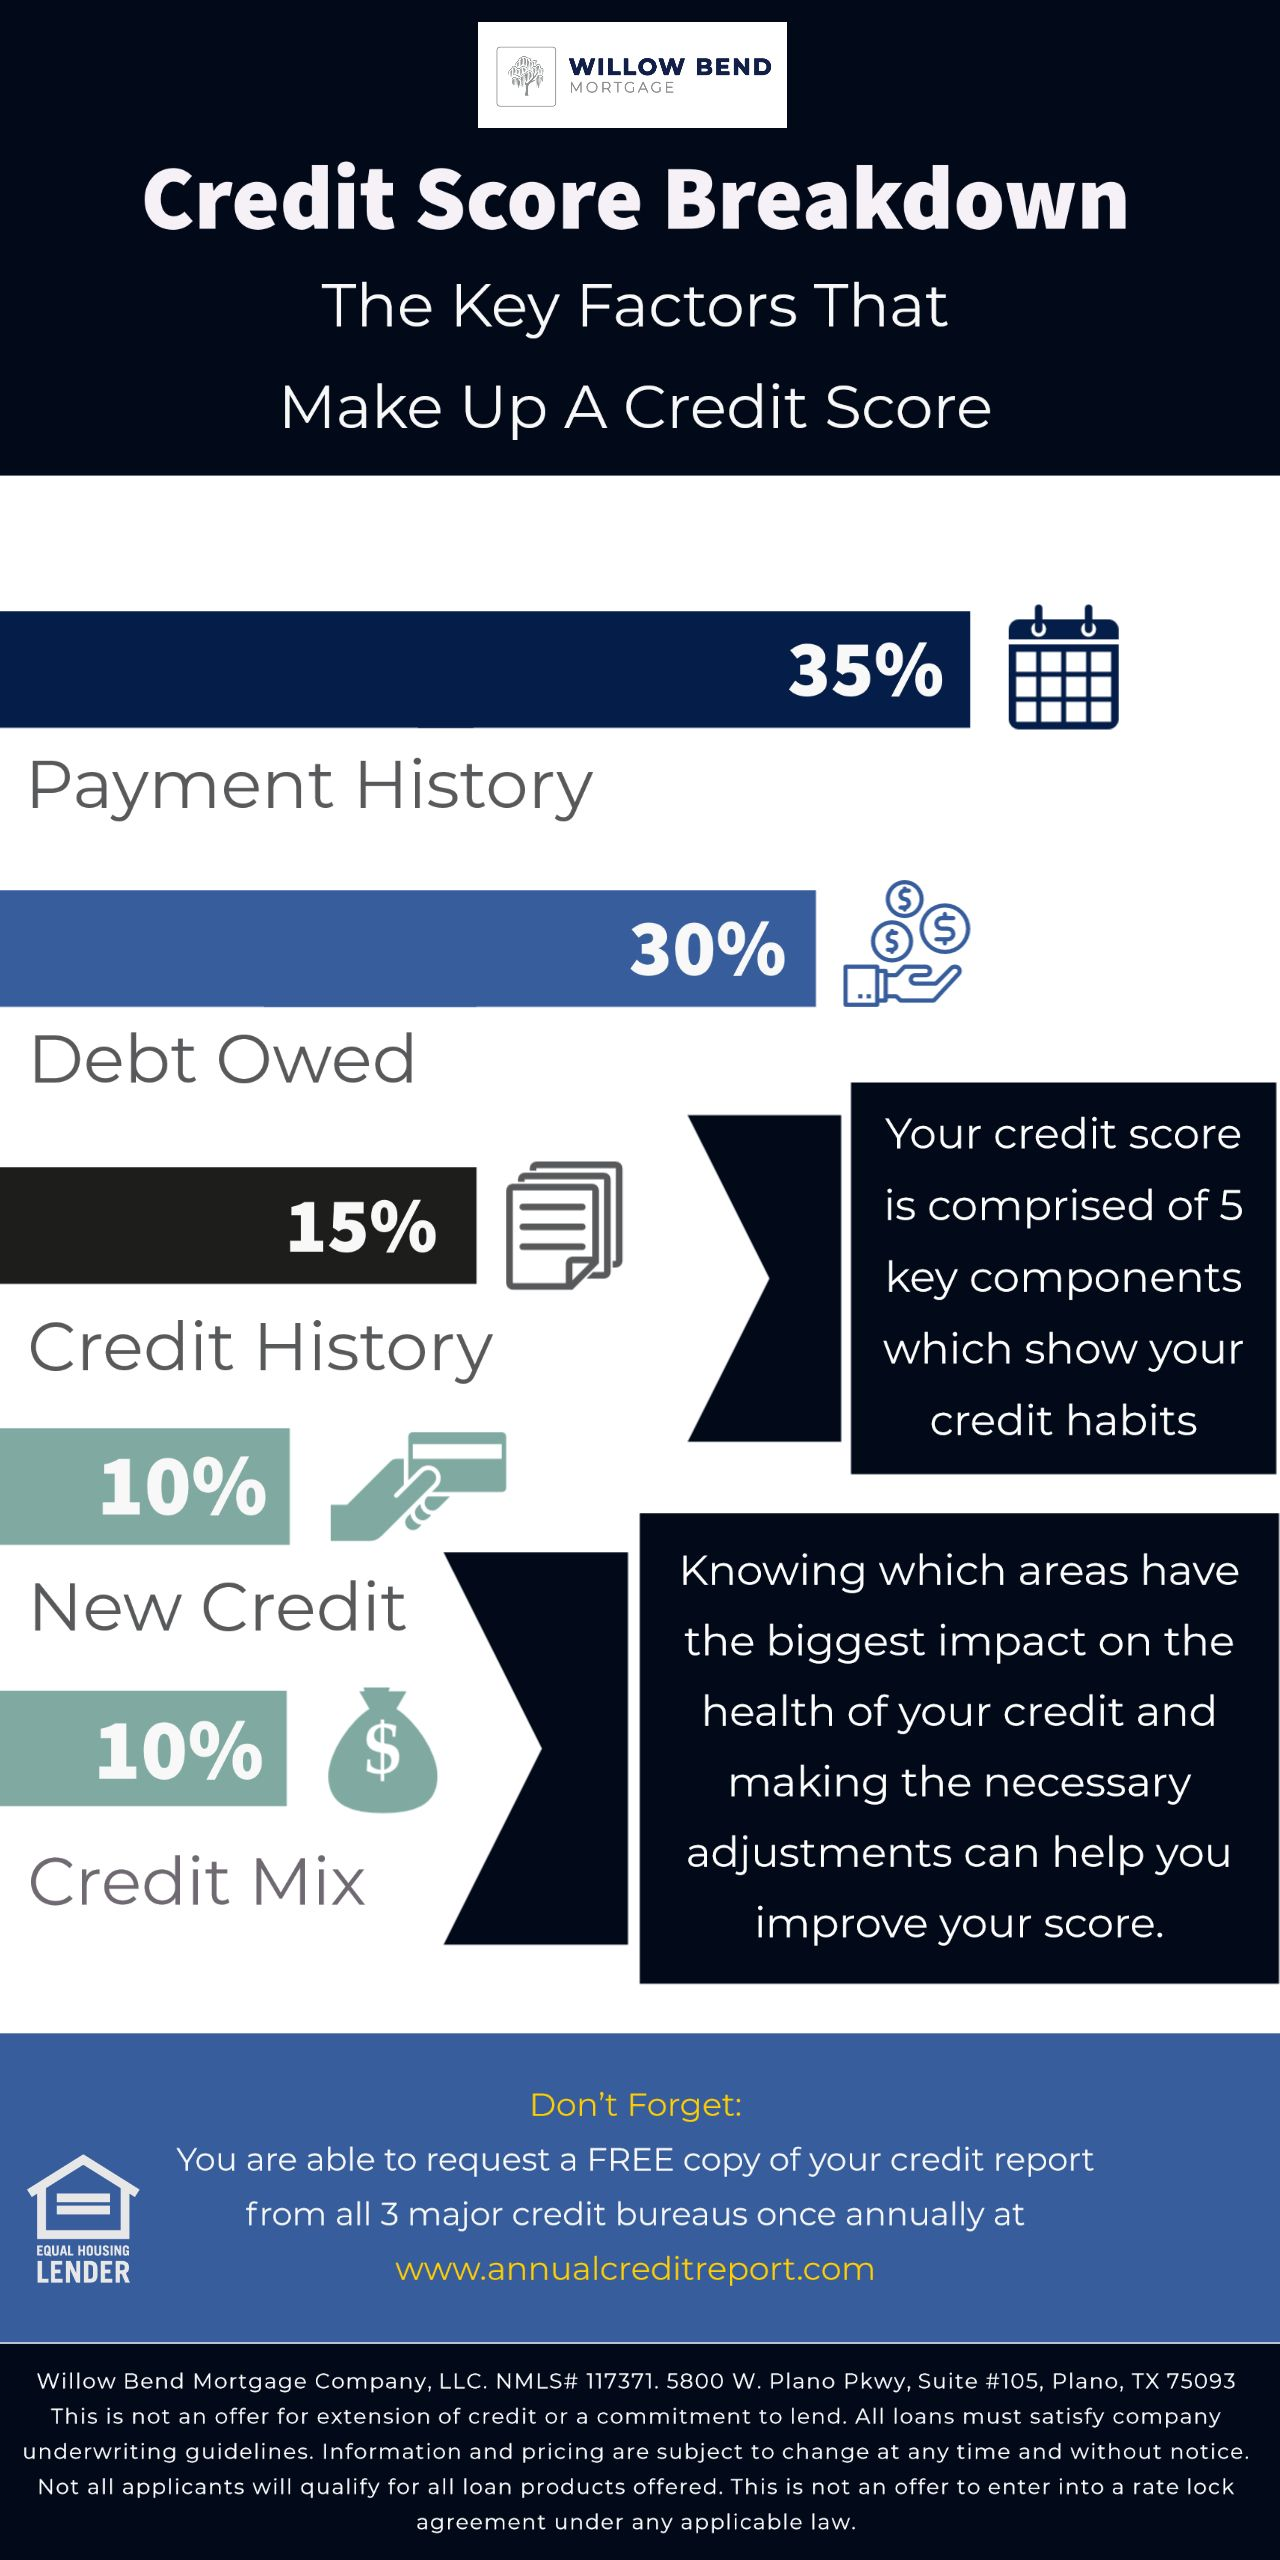 Don T Forget To Request A Free Copy Of Your Credit Report By